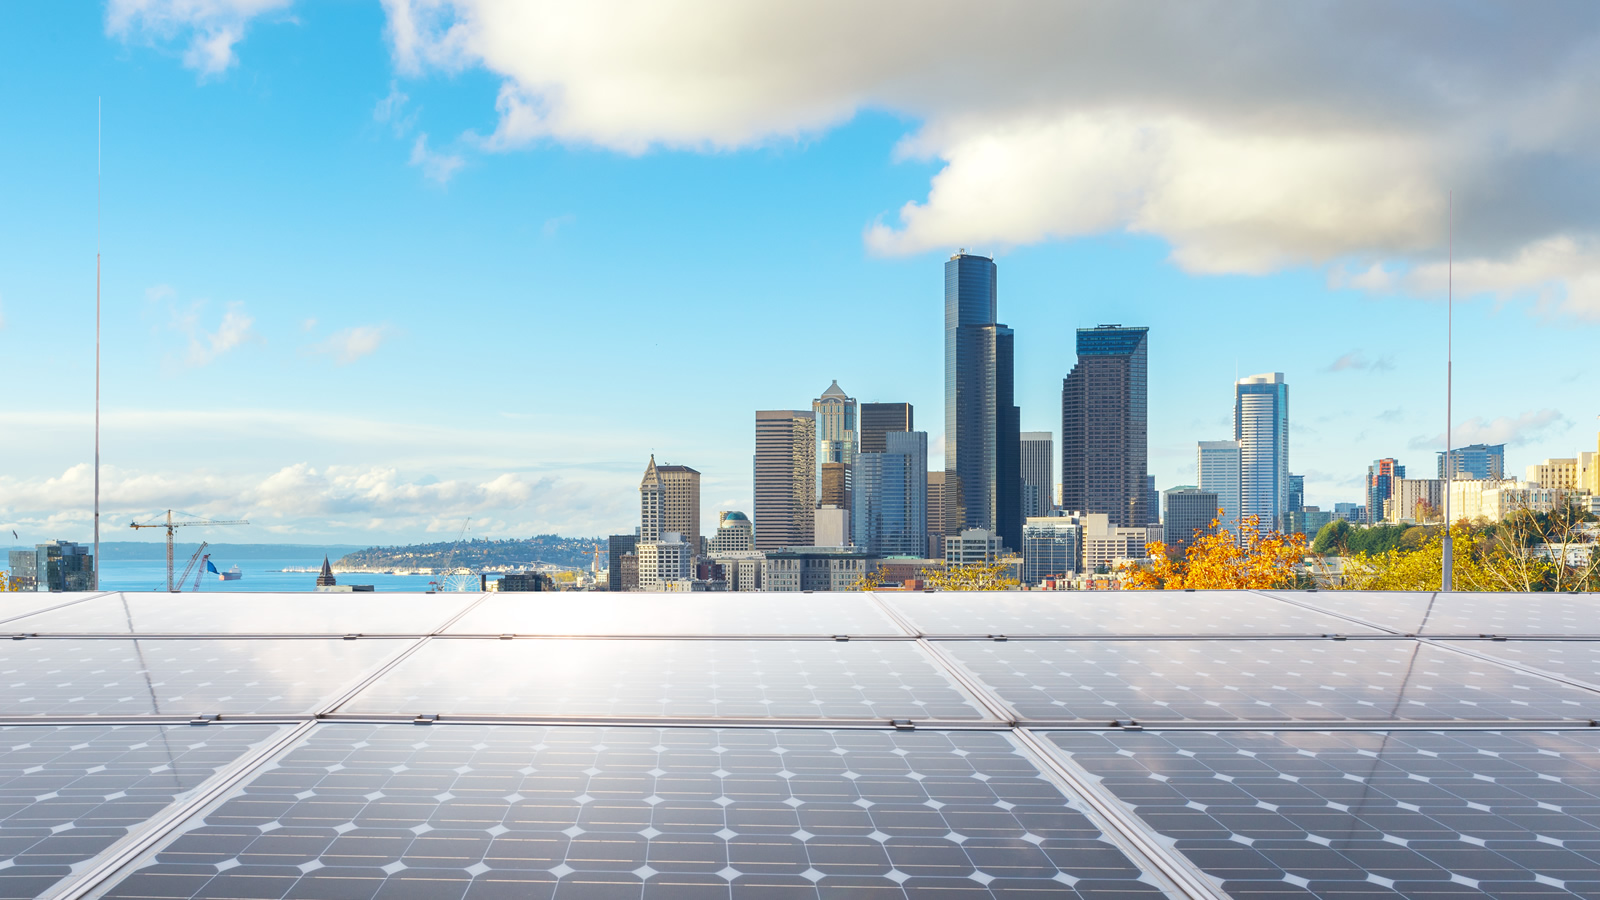 <h3>LEAD THE WAY</h3><p><h5>Communities can go big on solar by leading the way with bold goals and installations on public buildings.</h5>